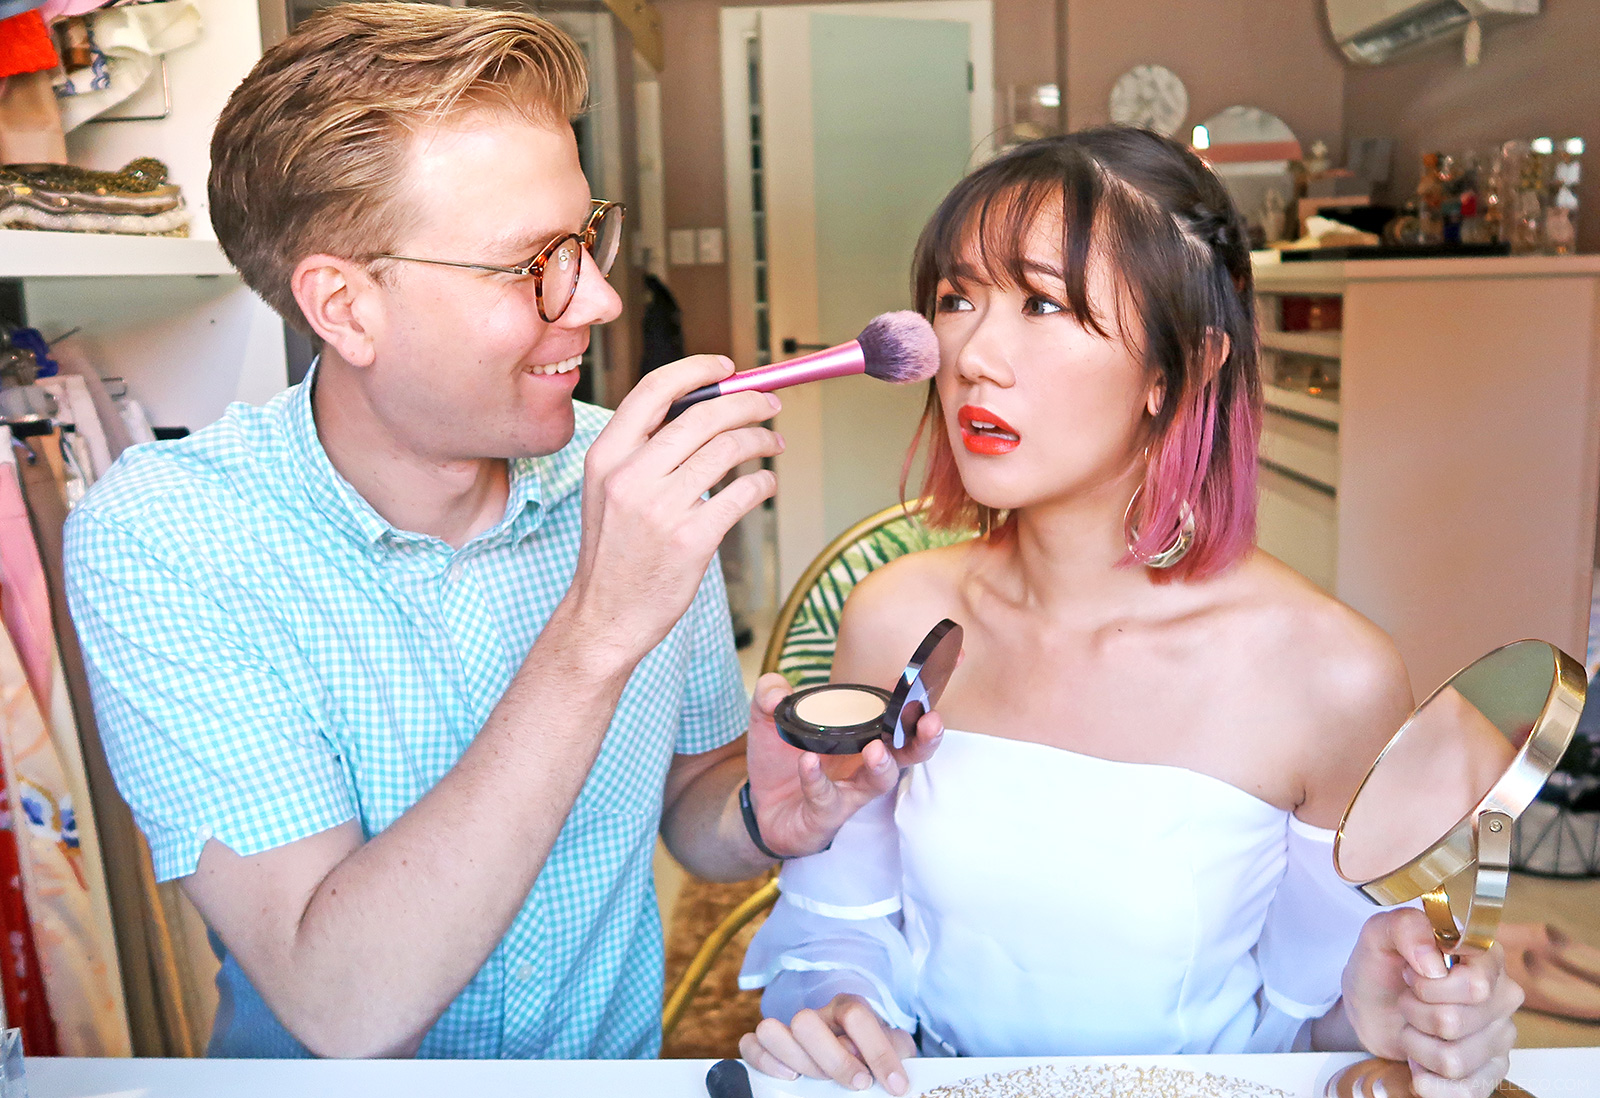 Camille Co - Boyfriend Does My Makeup